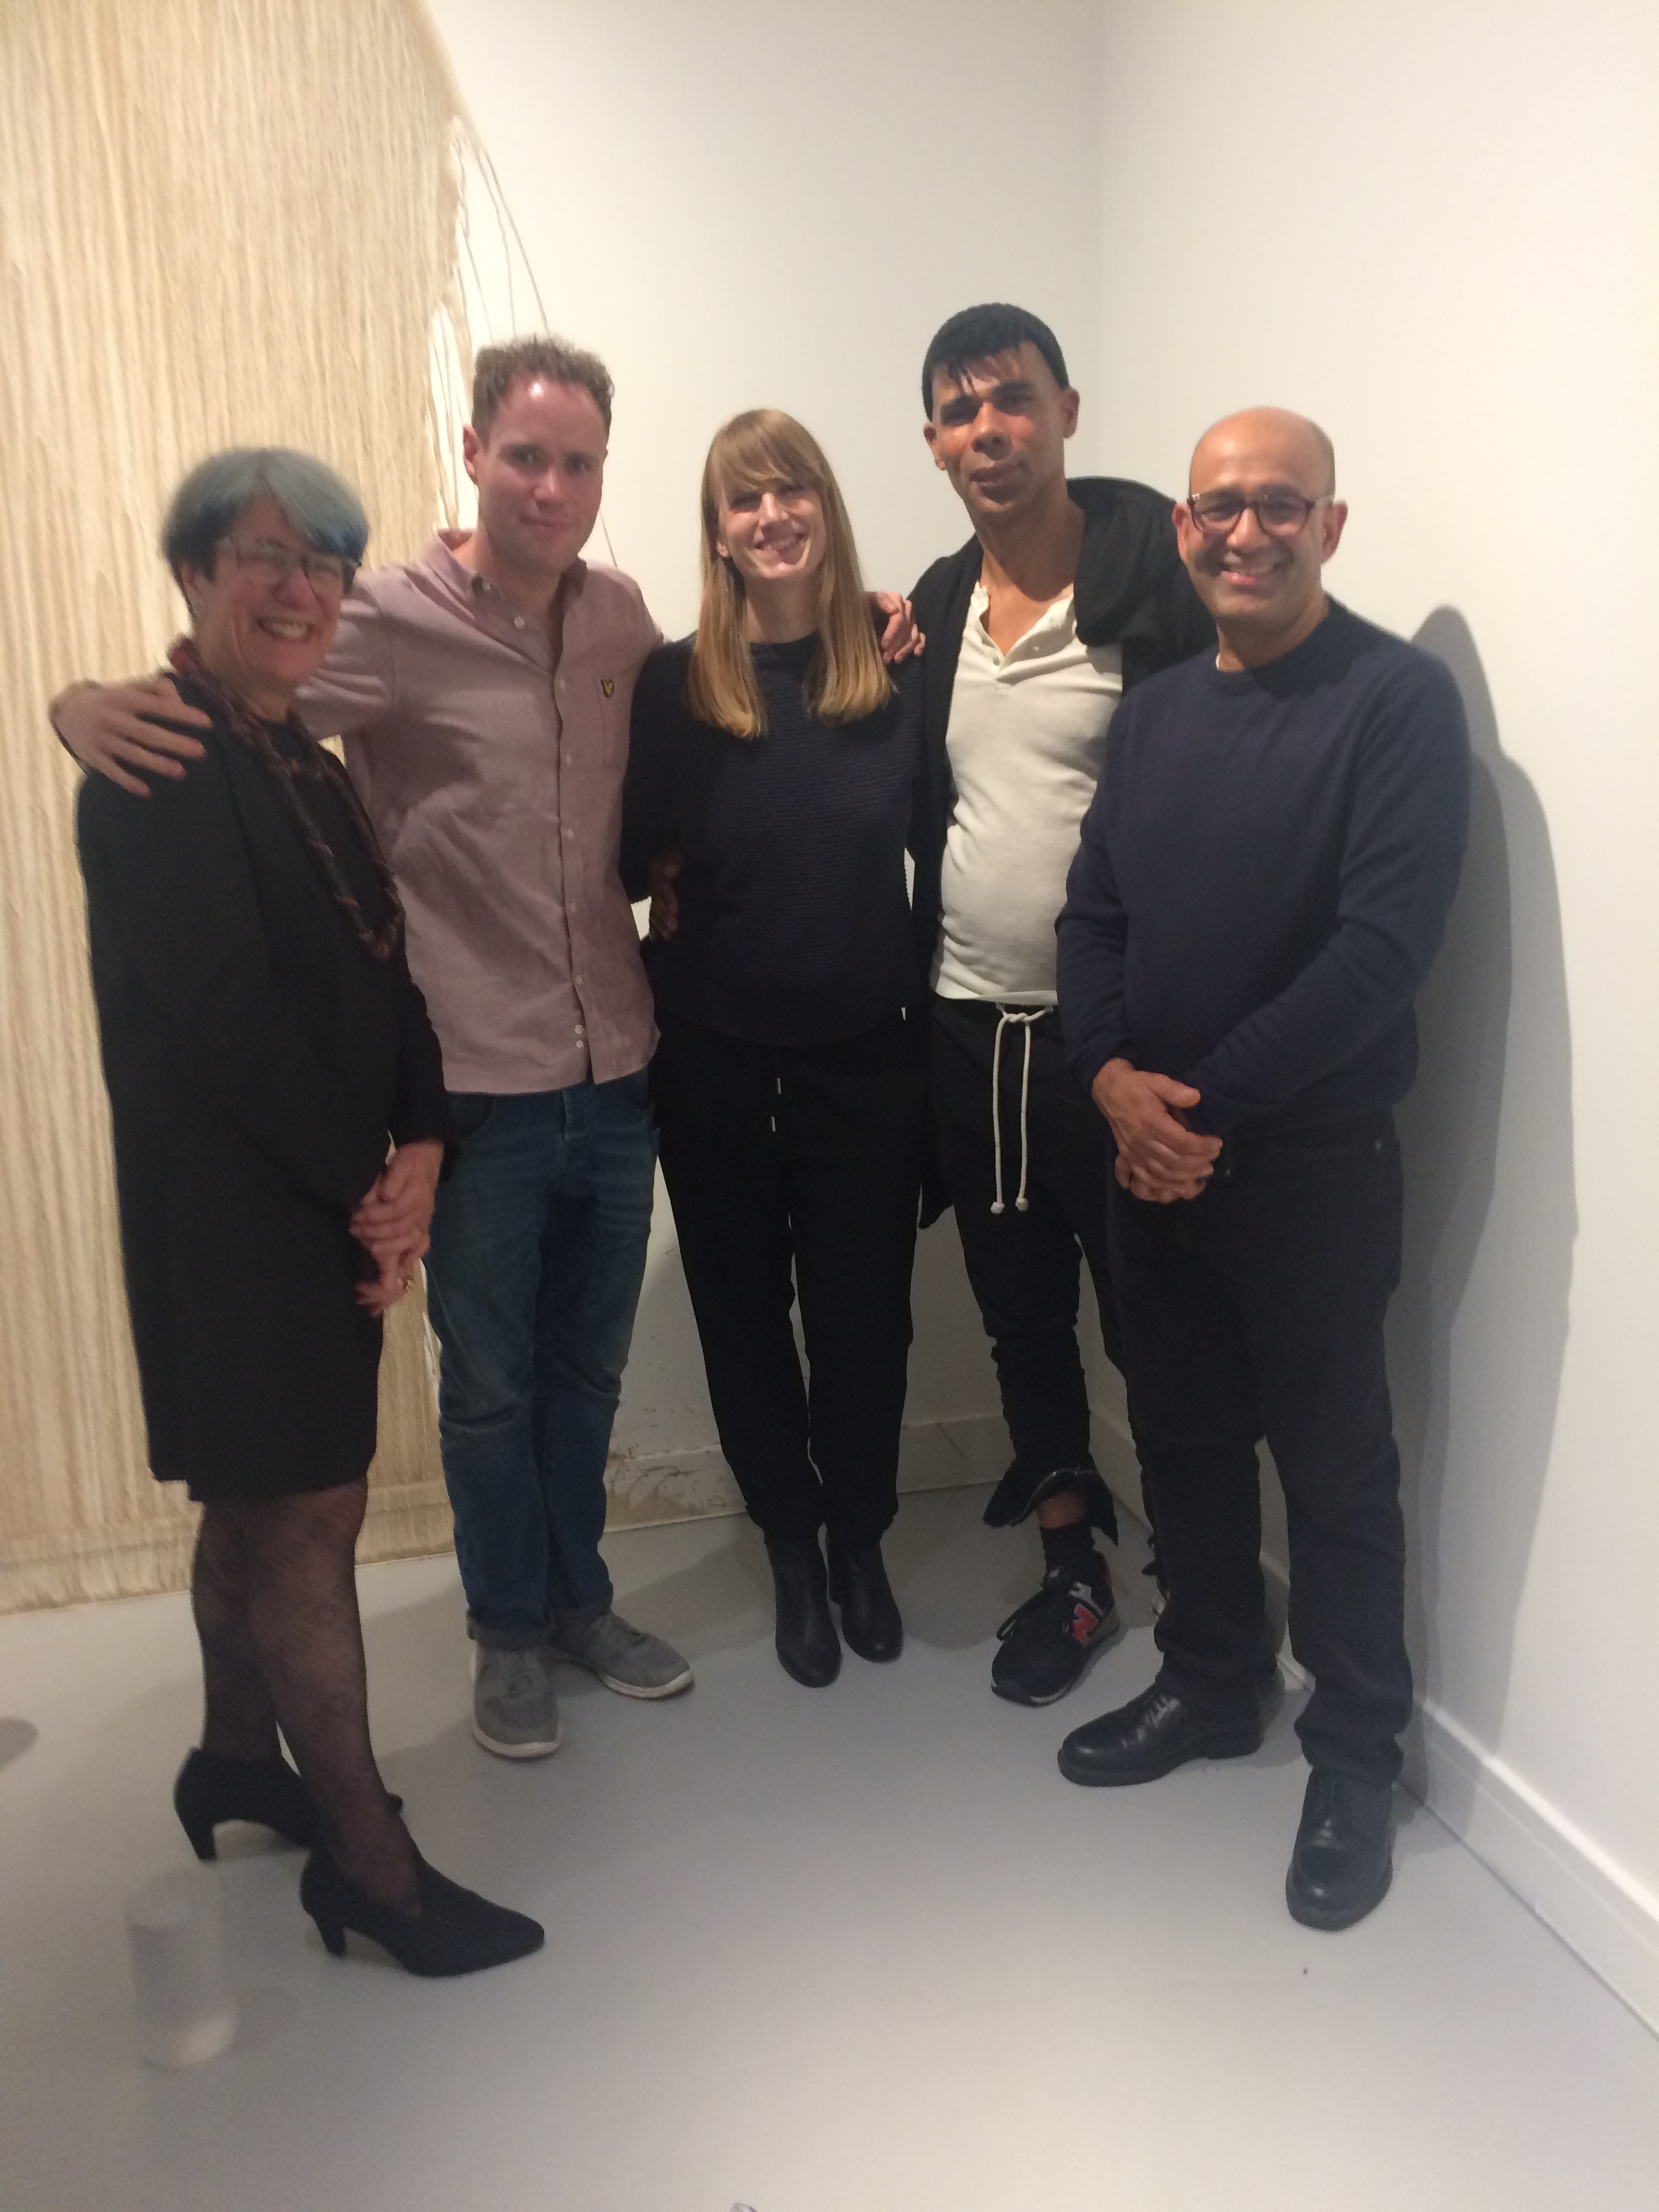 Opening night, left to right, Veronica Sekules, Shaun Fraser, Flora Bowden, Wayne Binitie, Kabir Hussain